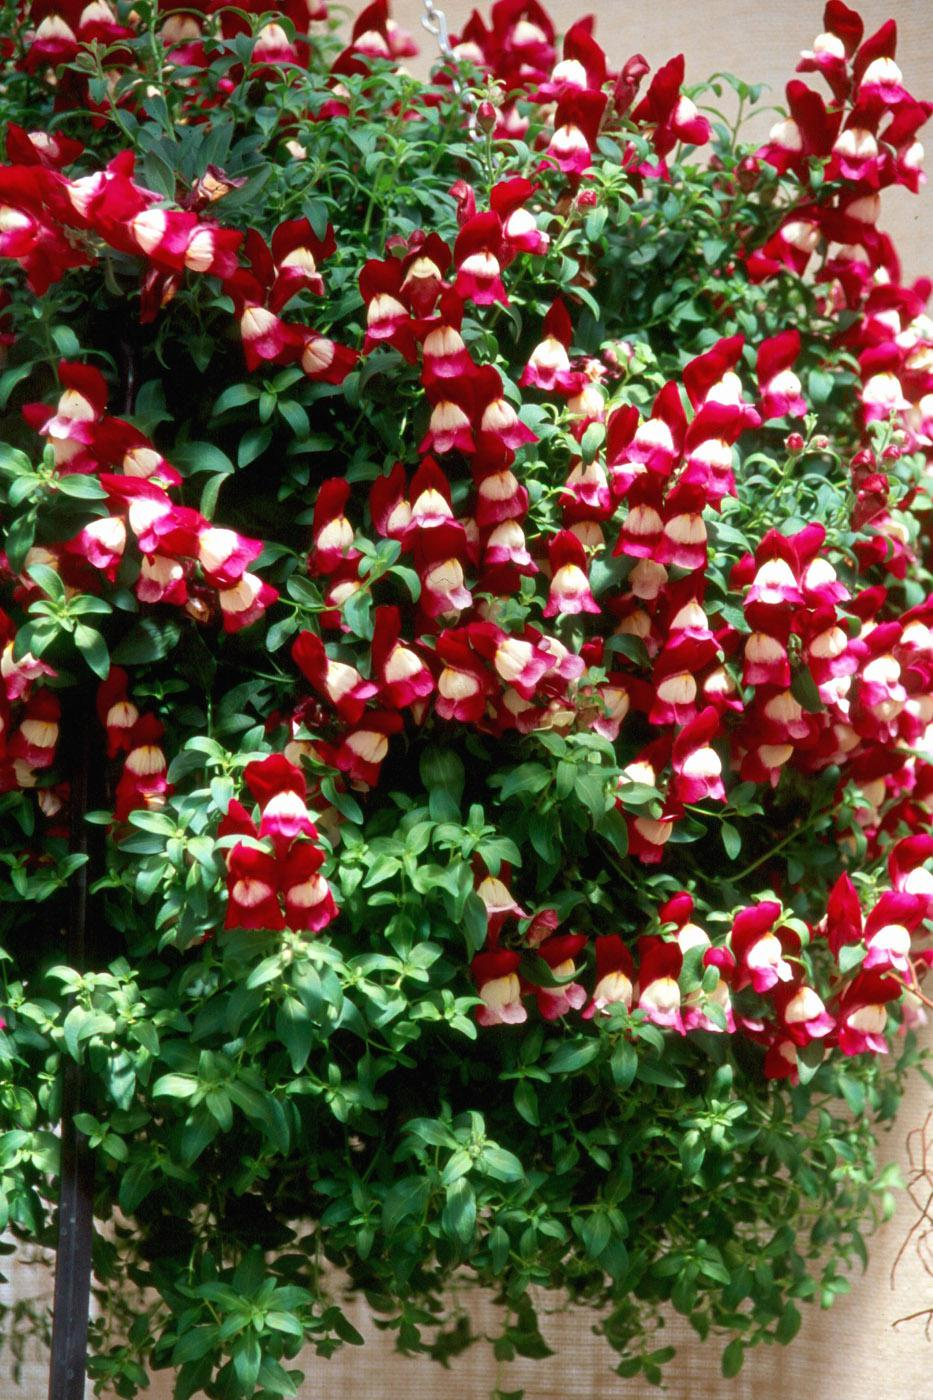 Visions of sugarplums take on a new meaning when people see this snapdragon variety called Sugarplum. A part of the Luminaire series, Sugarplum is vigorous and ideally suited in hanging baskets.